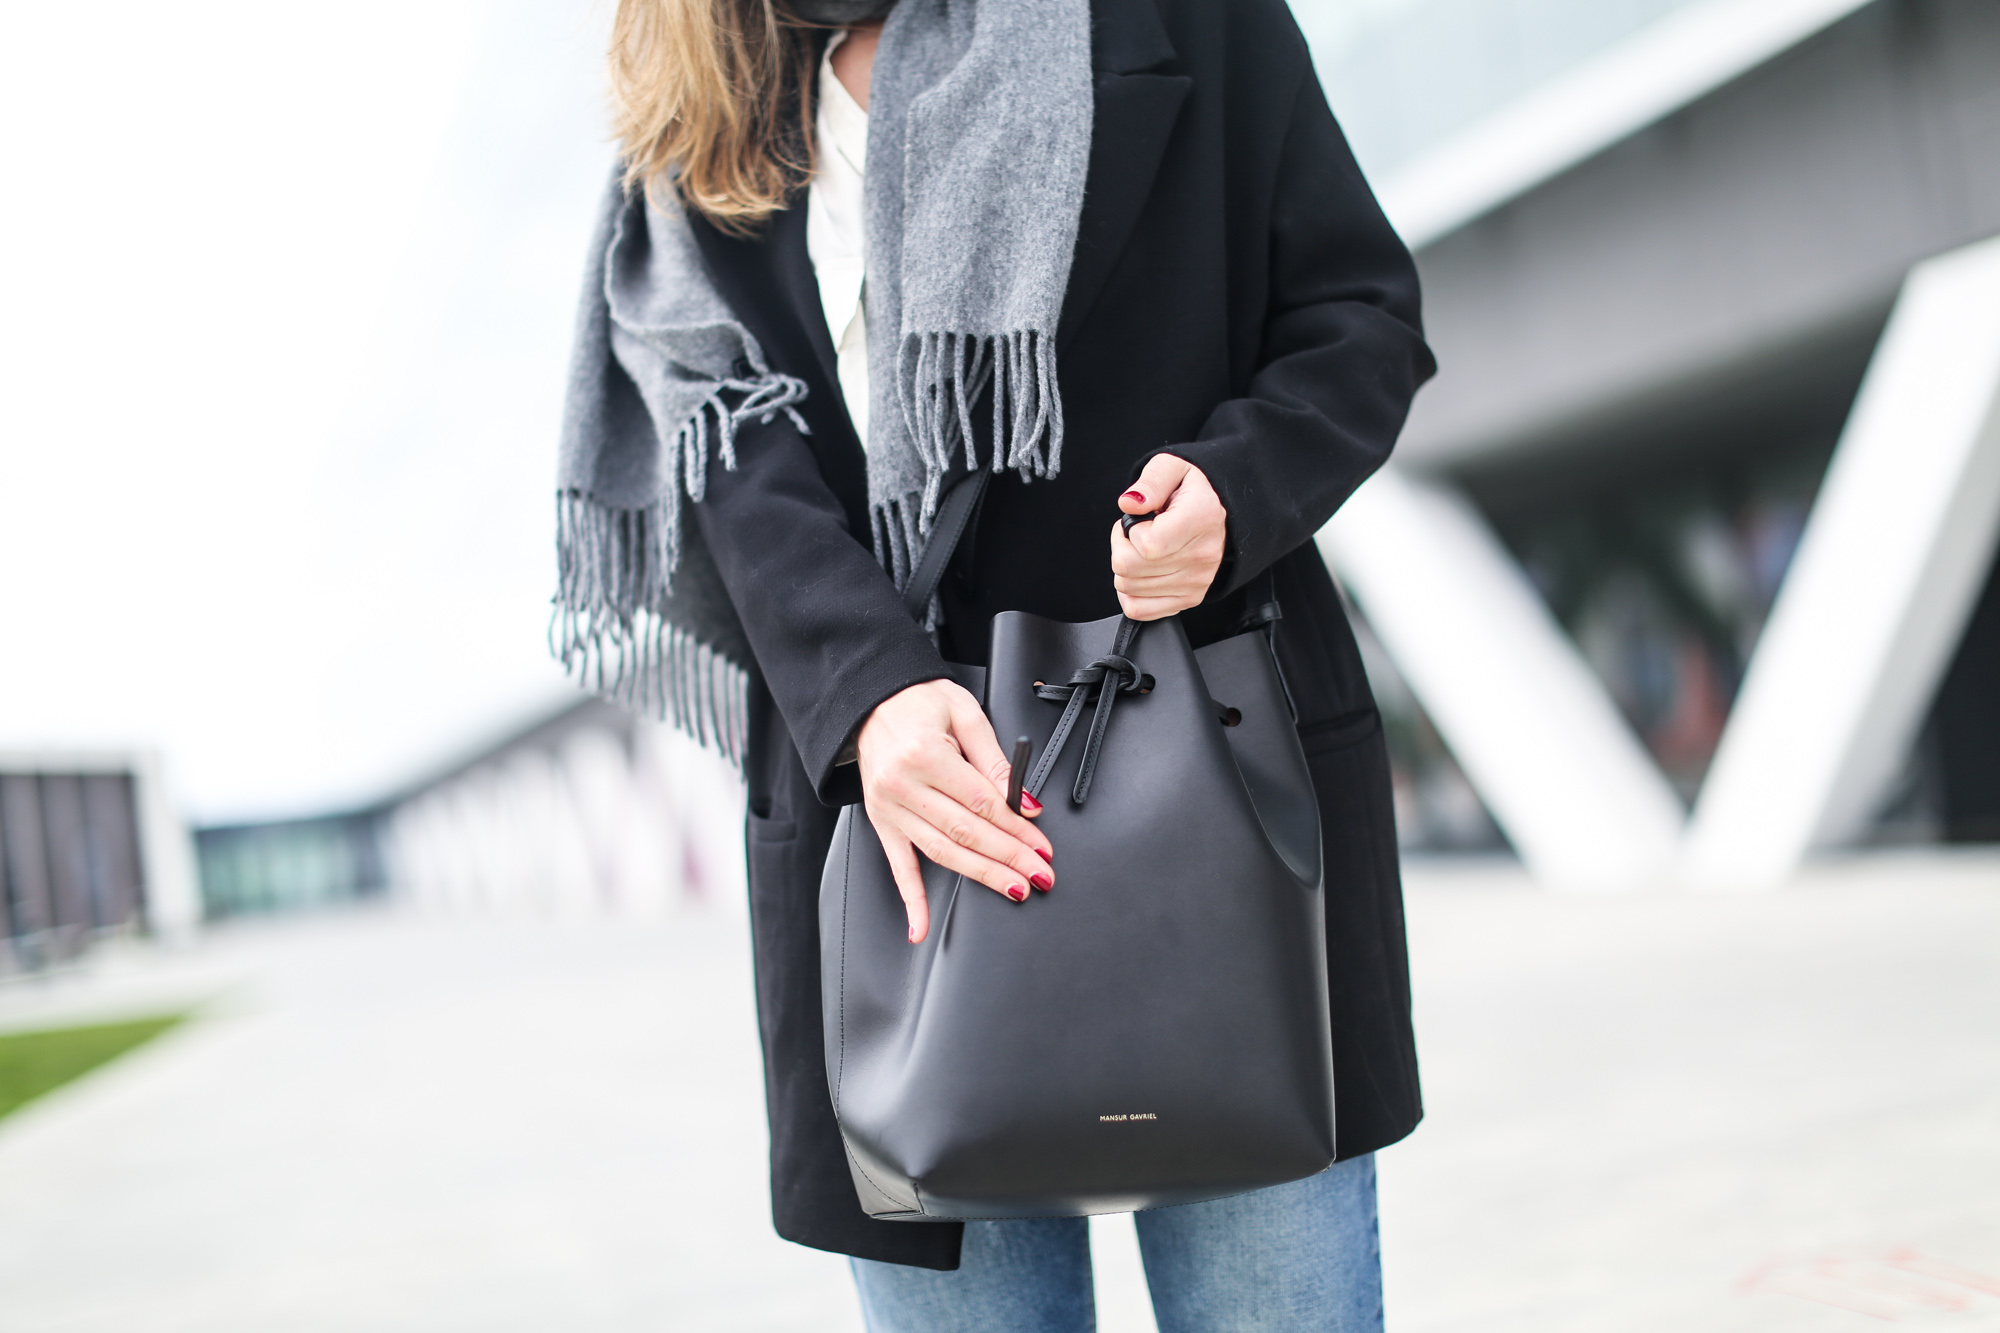 clochet_streetstyle_acnestudios_pop_jeans_mansurgavriel_bucket_bag_granny_shoes-9